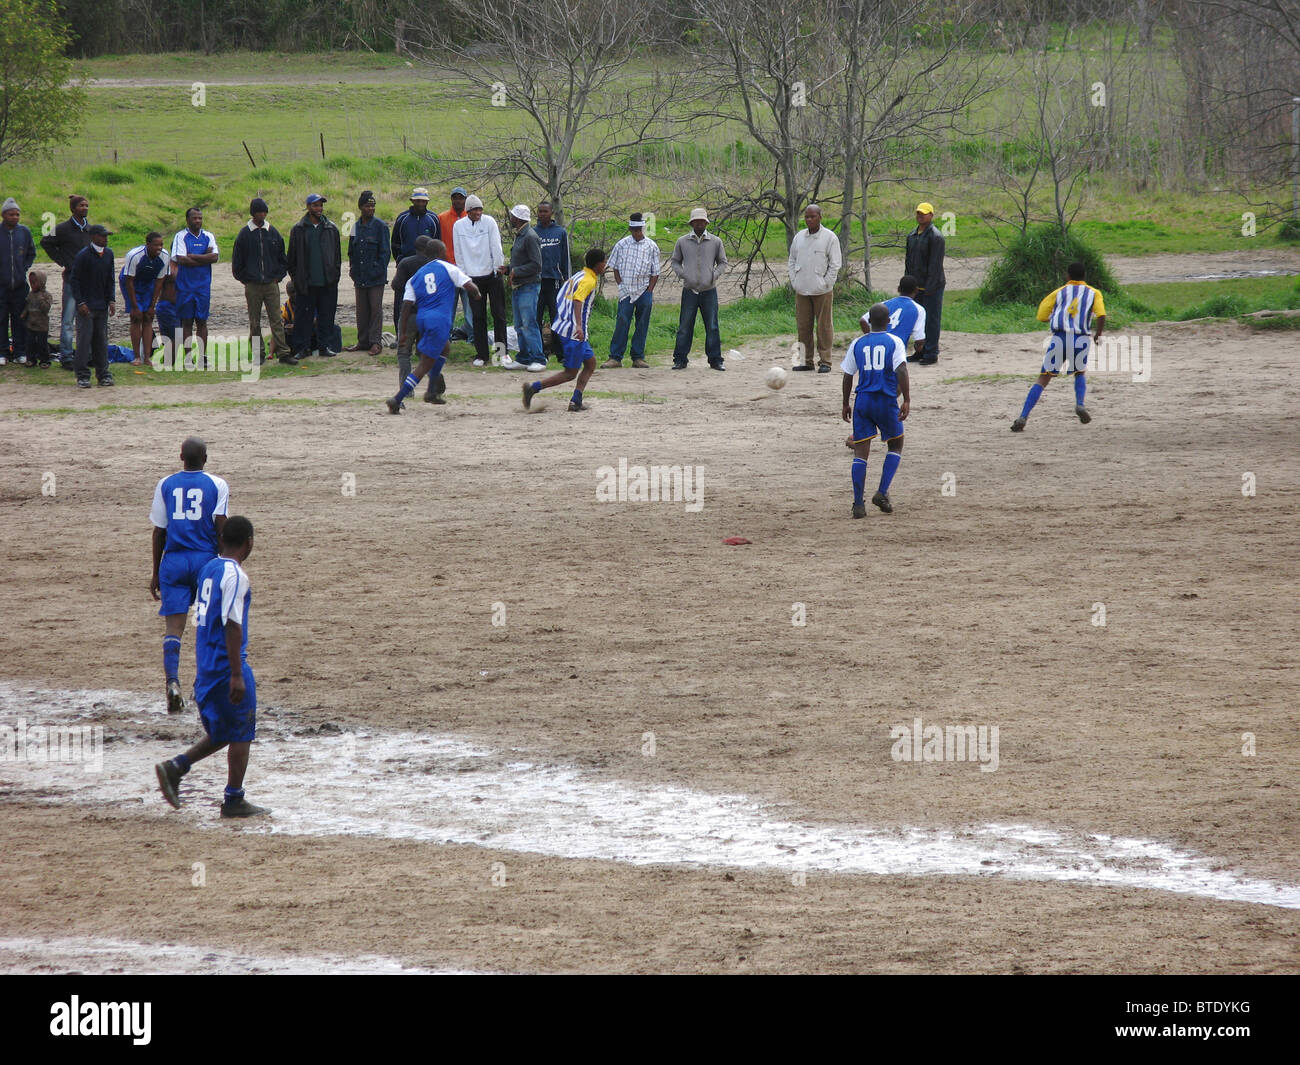 Football match played in a rural area - Stock Image